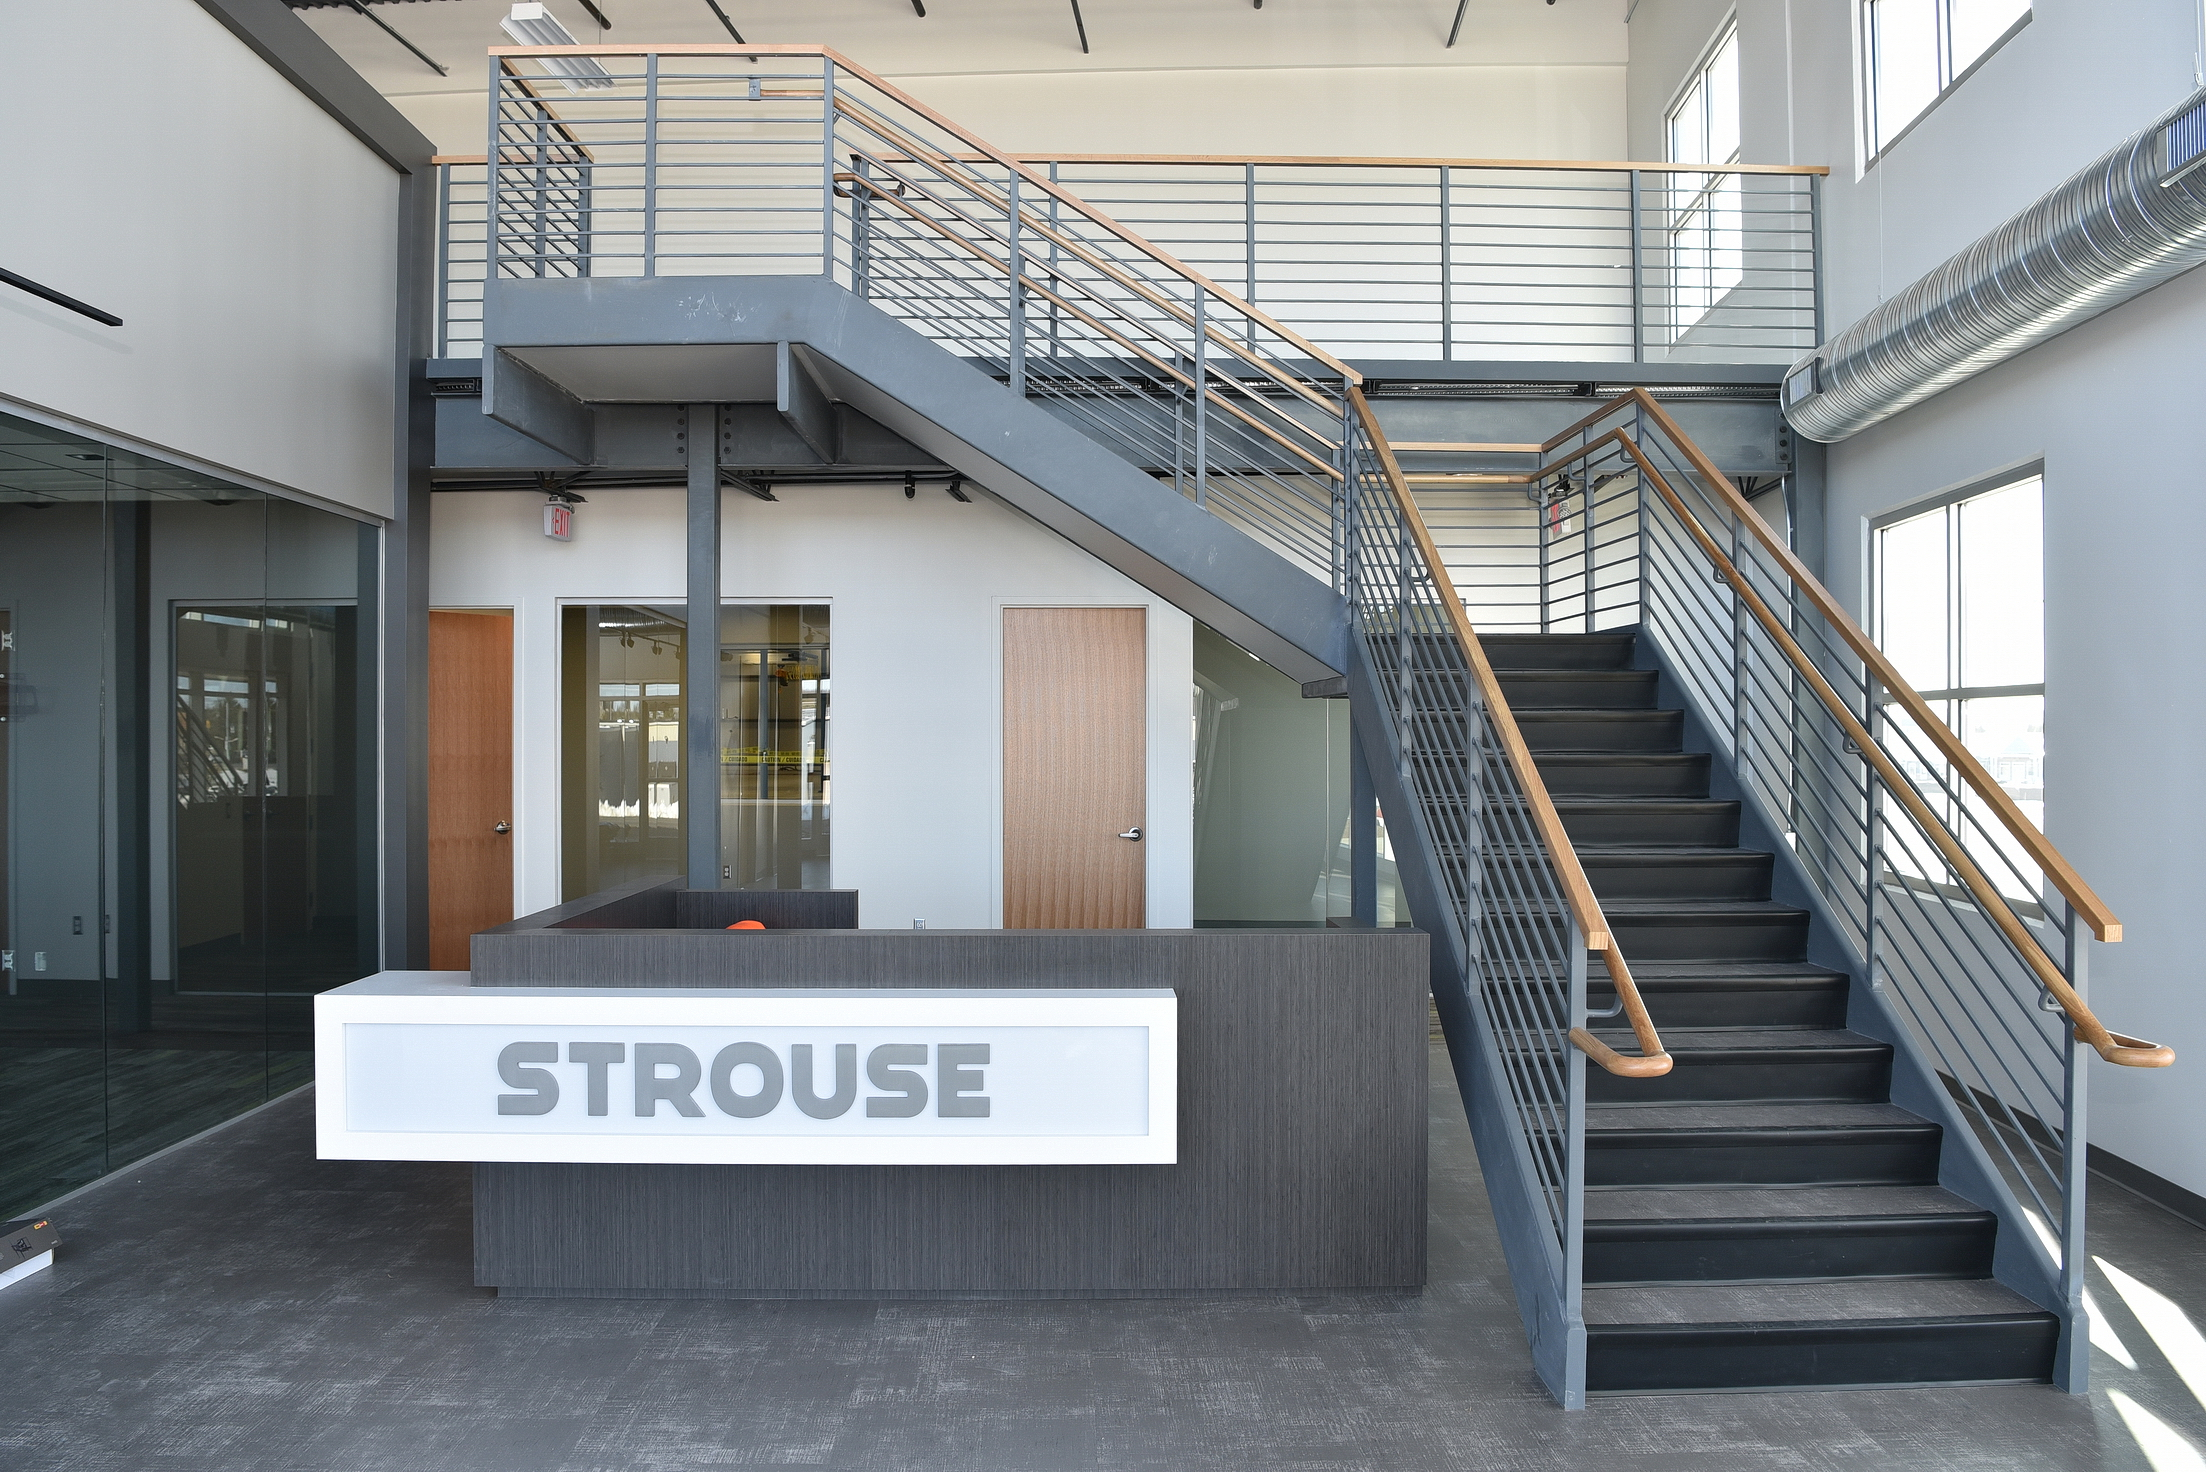 Strouse